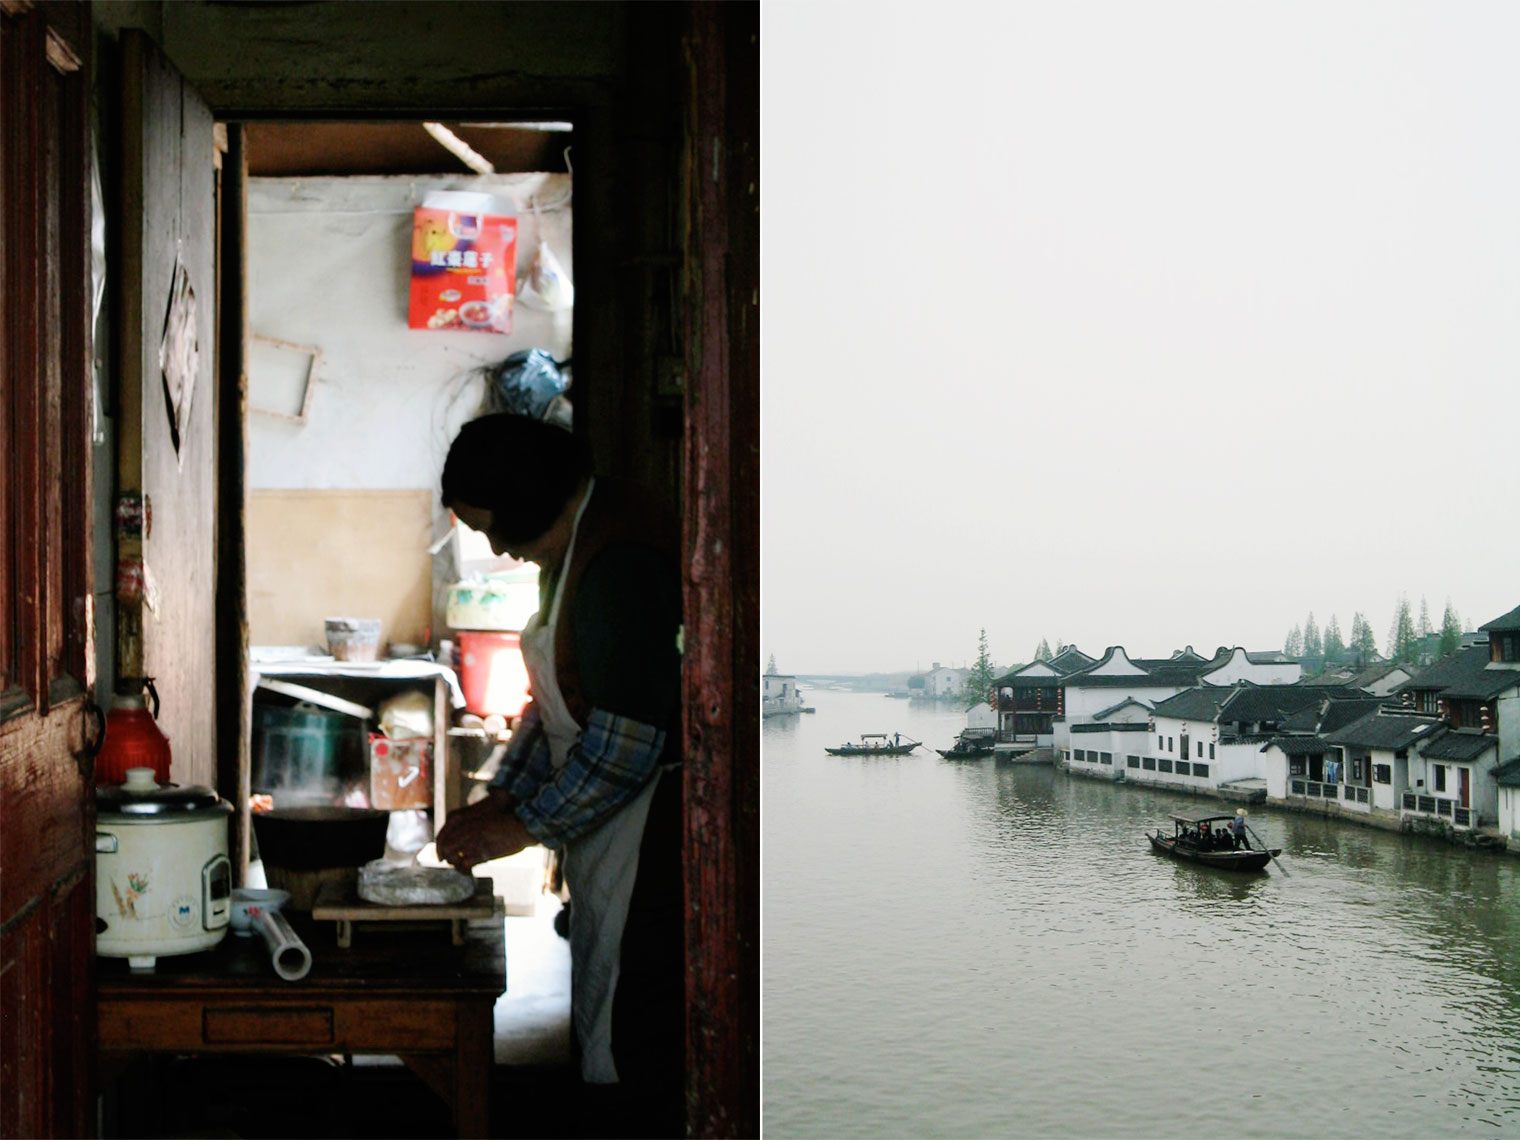 peggy-wong-photography_pwtravelogue_3233_3262_zhouzhuang-water-town_shanghai